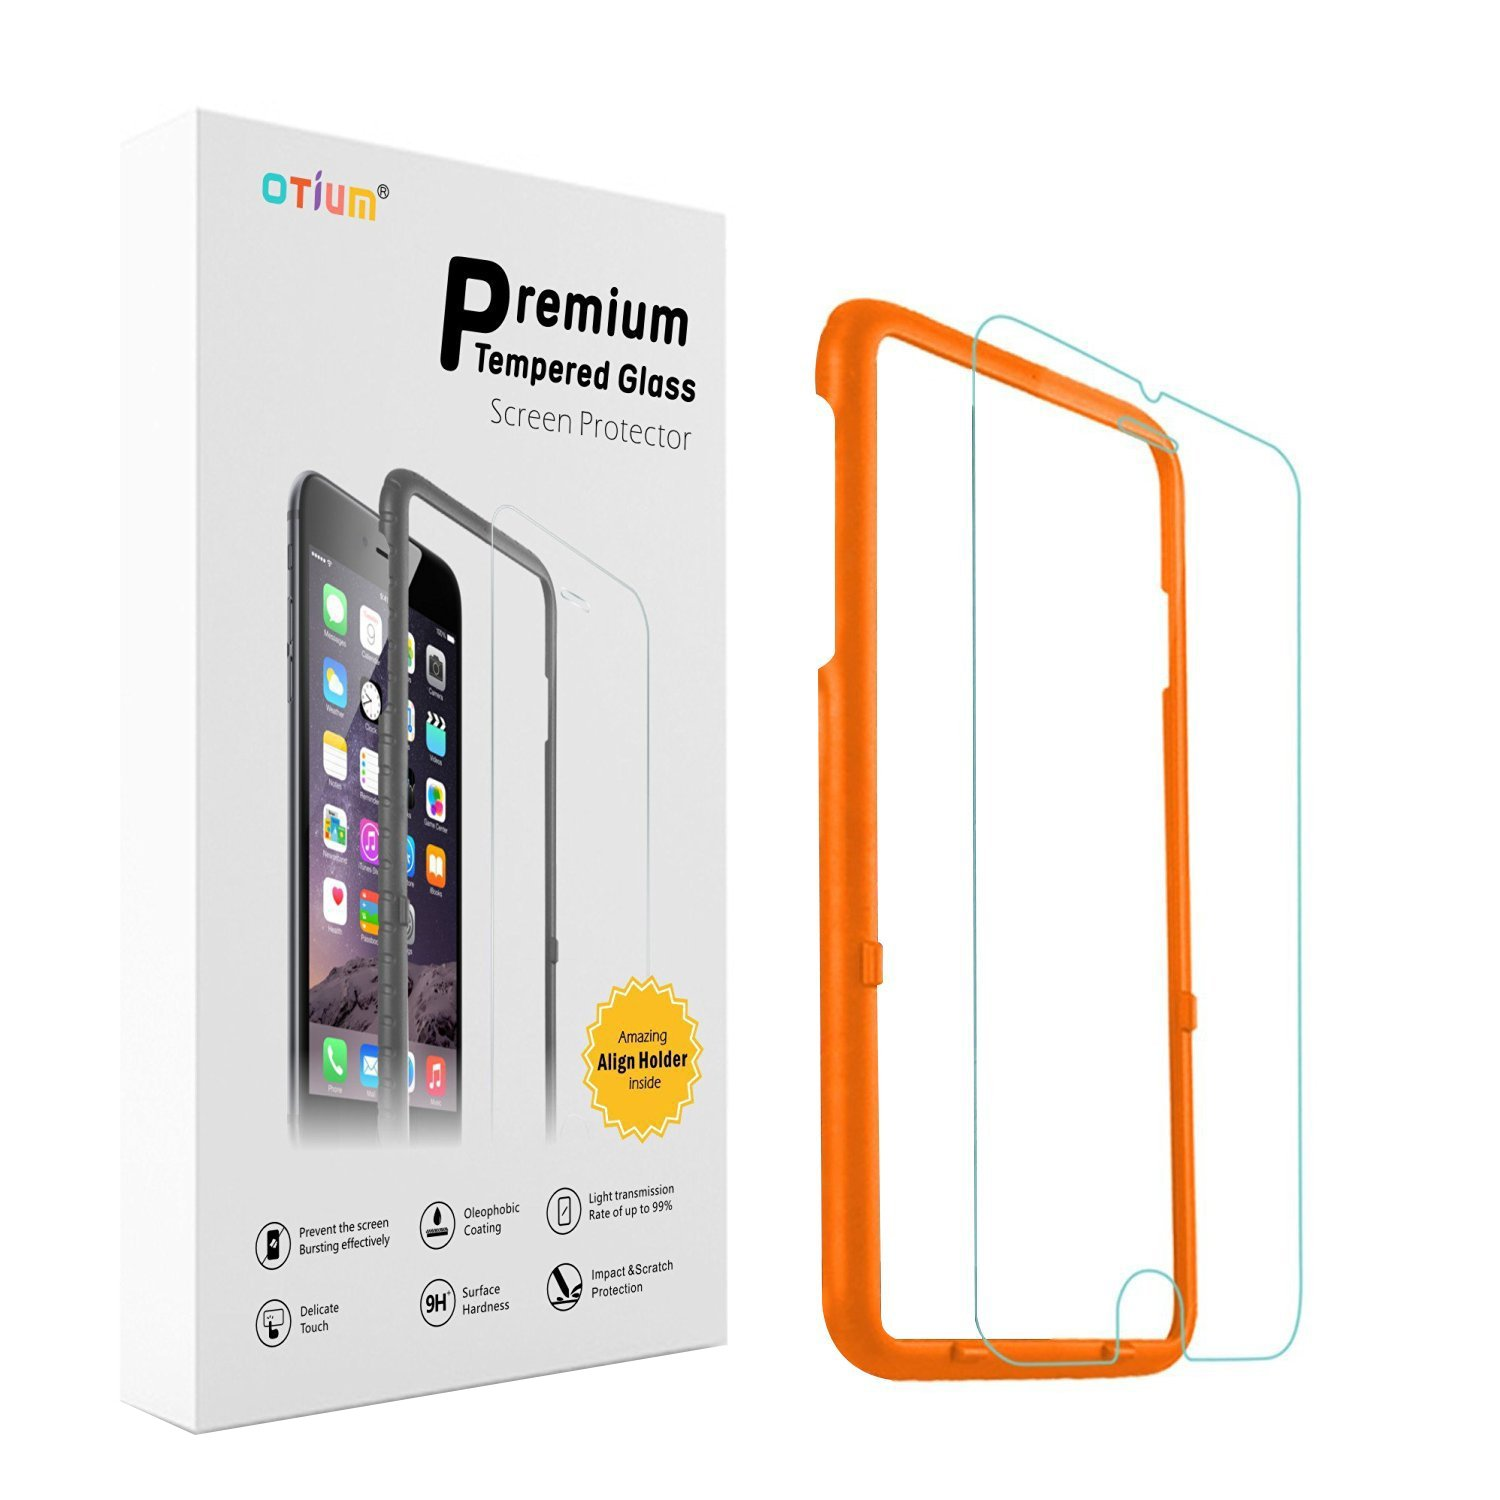 iPhone 6 6s Screen Protector Otium Tempered Glass Amazon Electronics